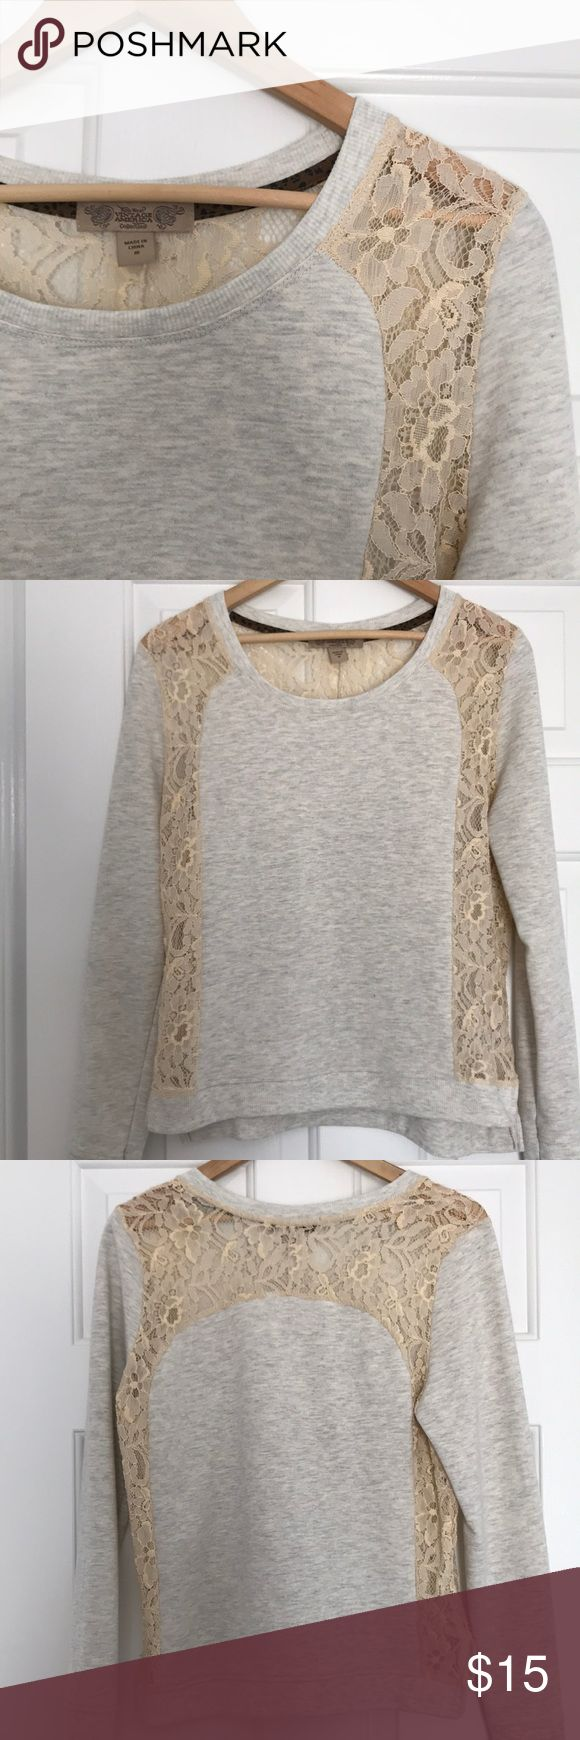 Long Sleeve Sweatshirt with Lace Vintage America Gray terry sweatshirt with cream lace detail. No holes rips stains or fading, worn a handful of times. Super cute and unique! See last photo to get an idea of the material. Looks and feels like a sweatshirt from the outside but it's not fuzzy on the inside. Nine West Tops Sweatshirts & Hoodies